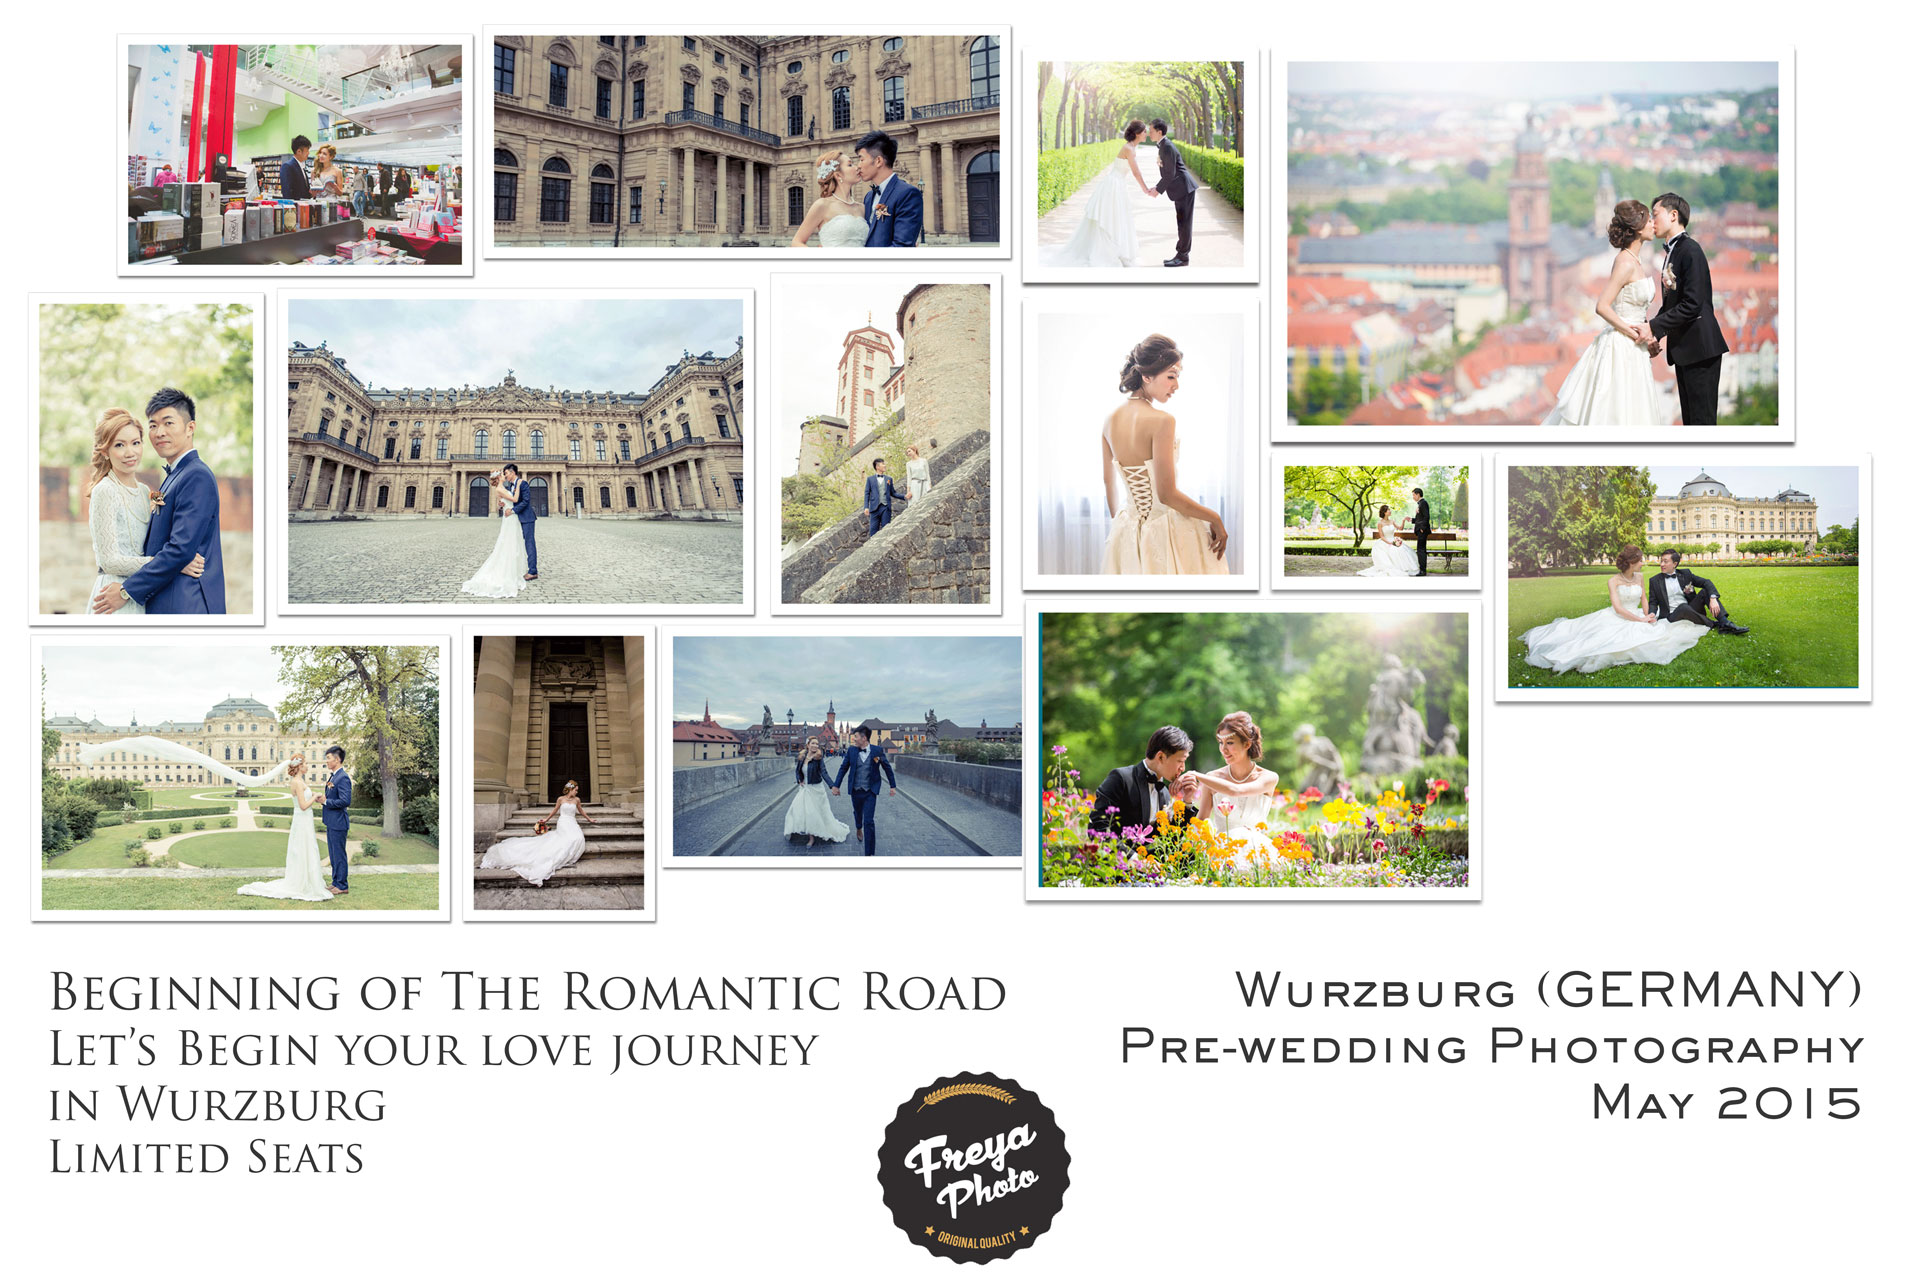 pre-wedding photography in Germany